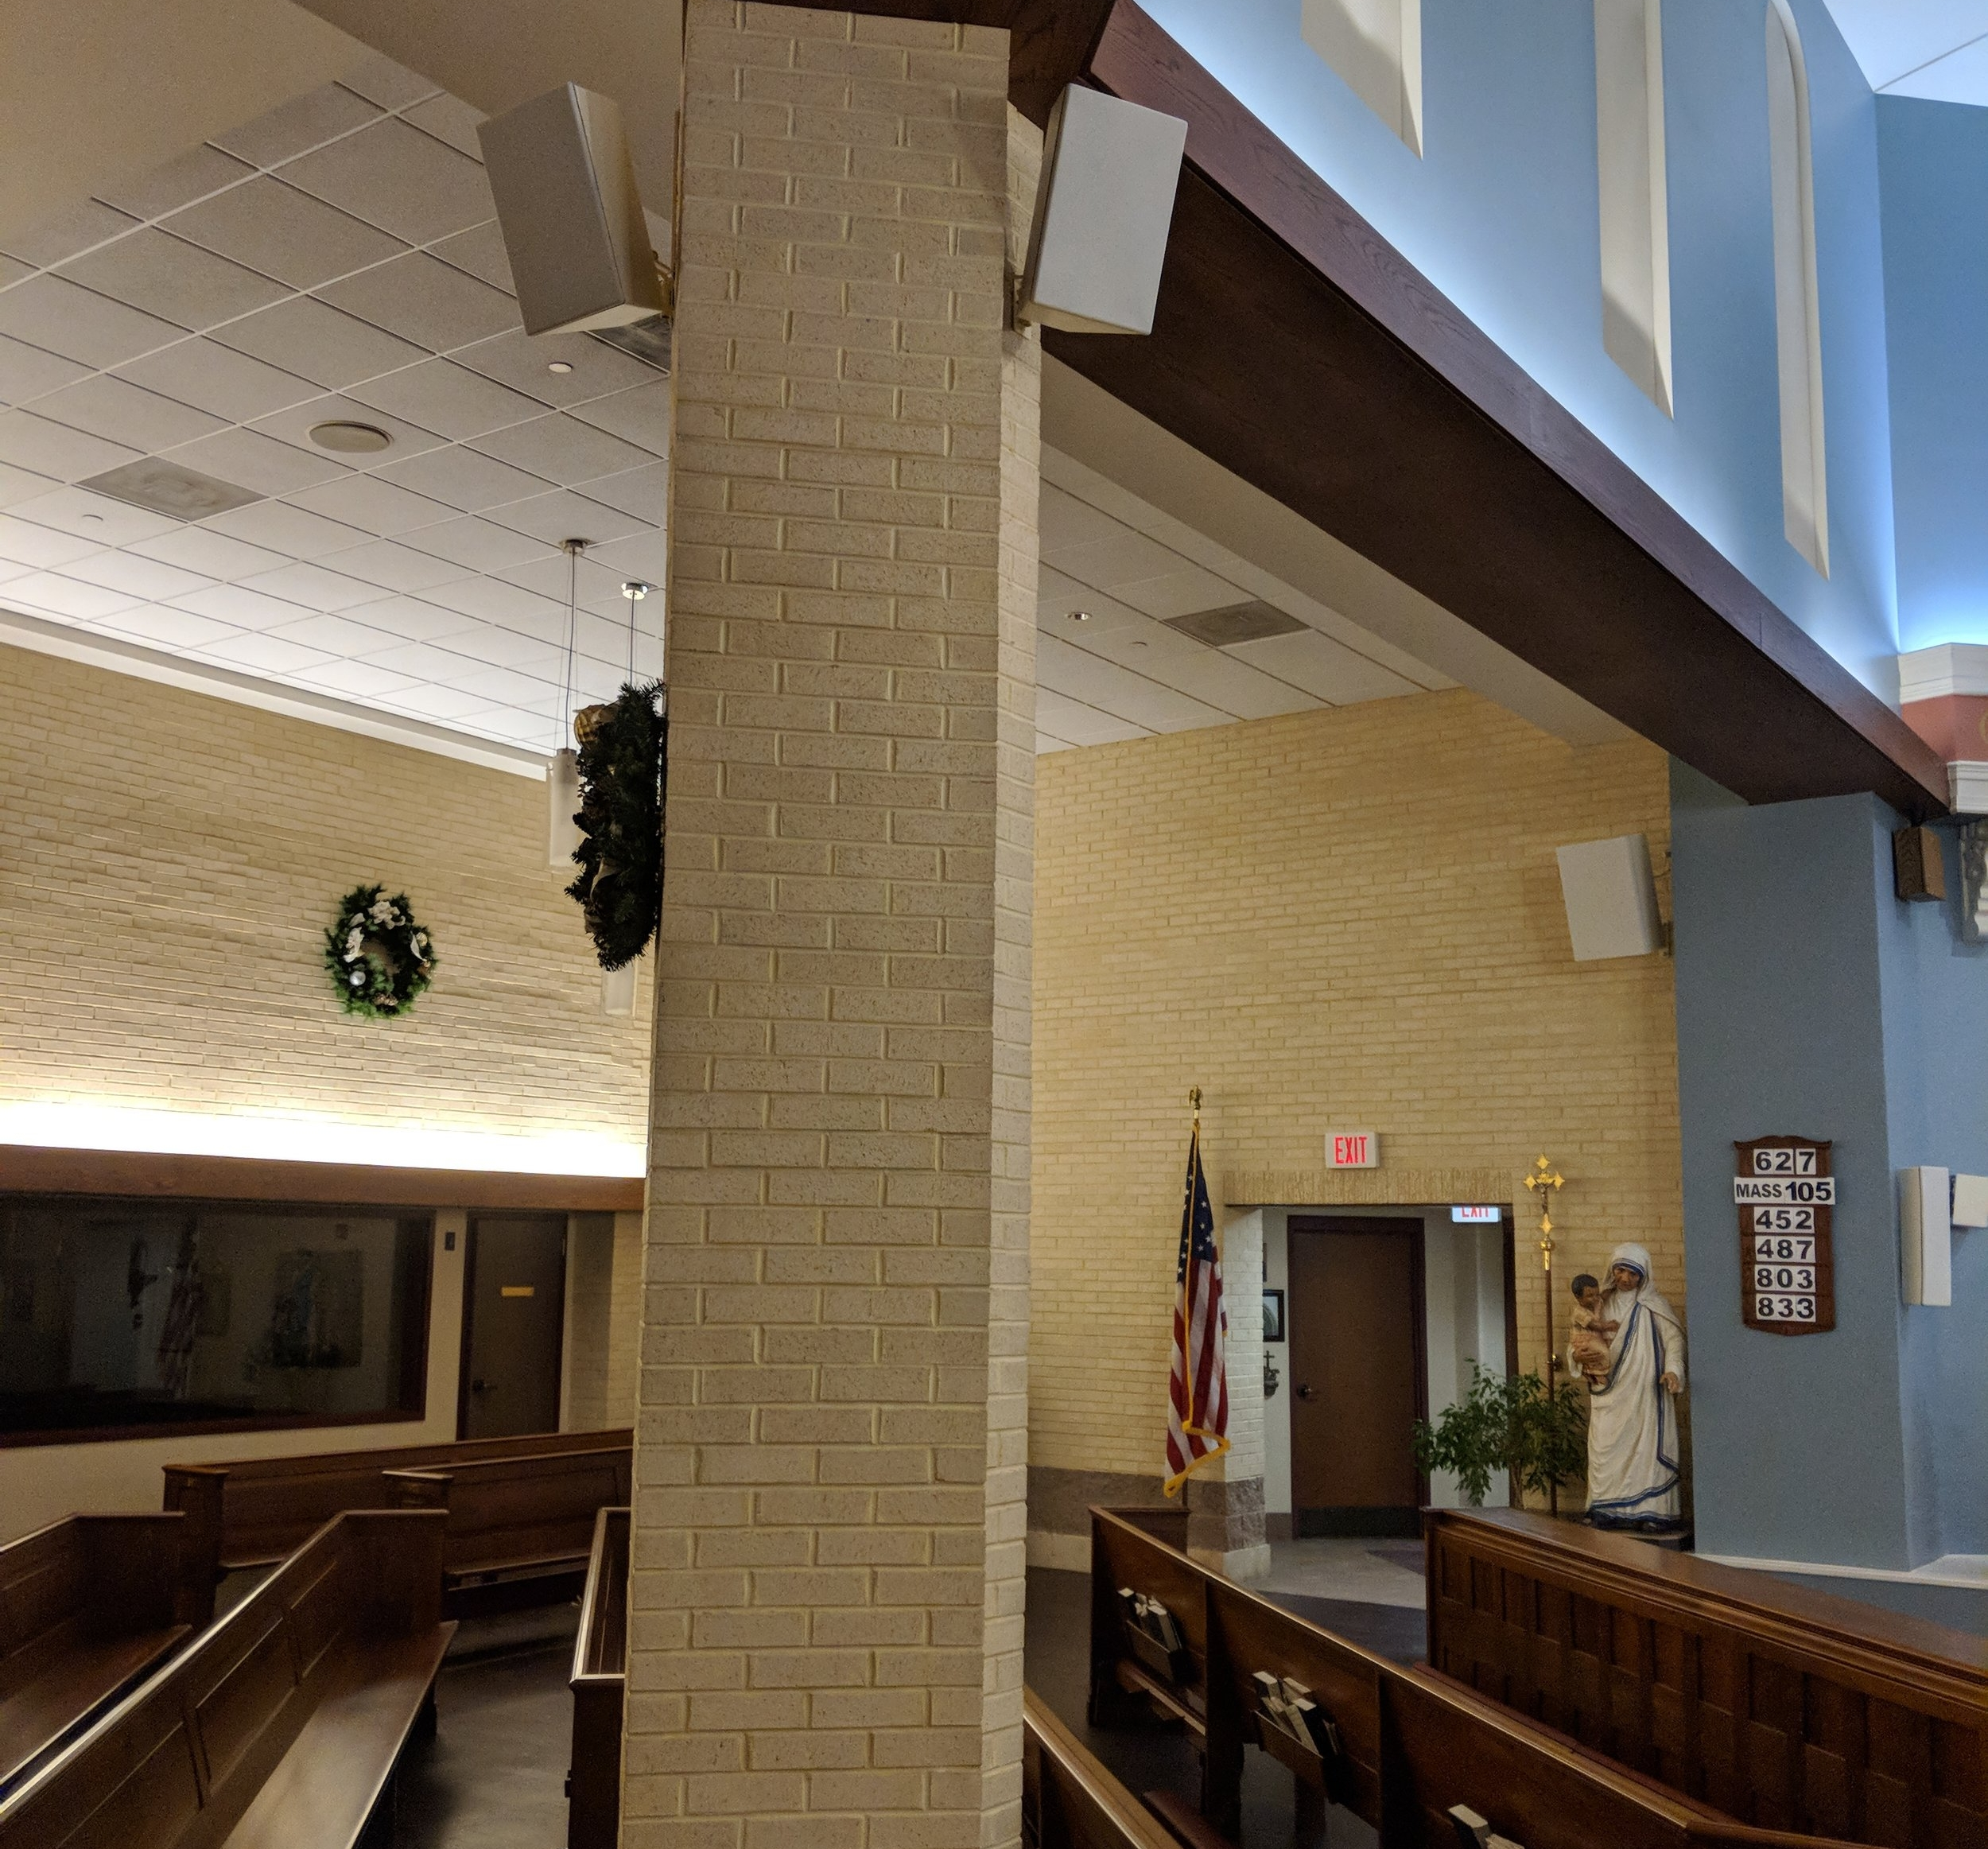 CAMM DT-400 speakers mounted on the column provide audio coverage in the center nave. CAMM DT-800 speakers mounted in the sides of the church provide audio coverage for individuals in the end pews and additional low frequency reinforcement.